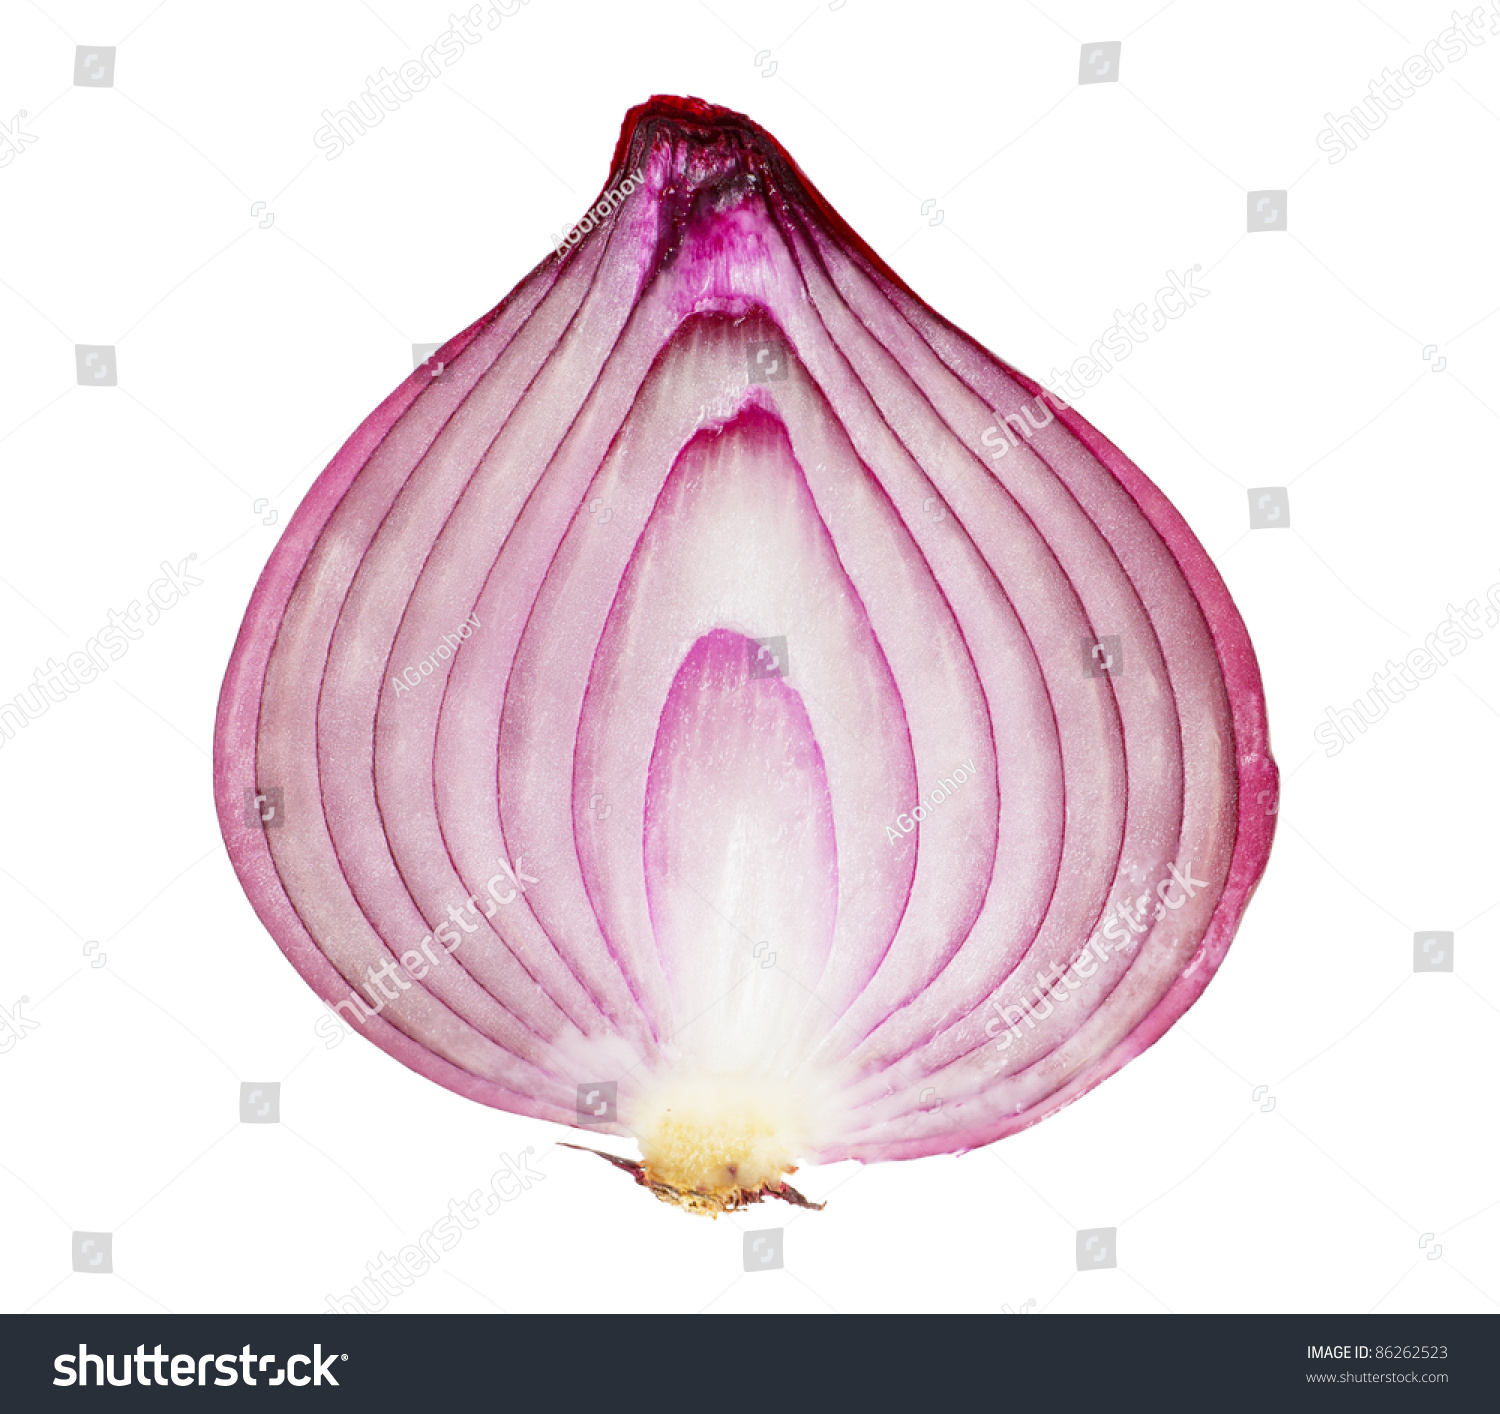 how to store a half cut onion